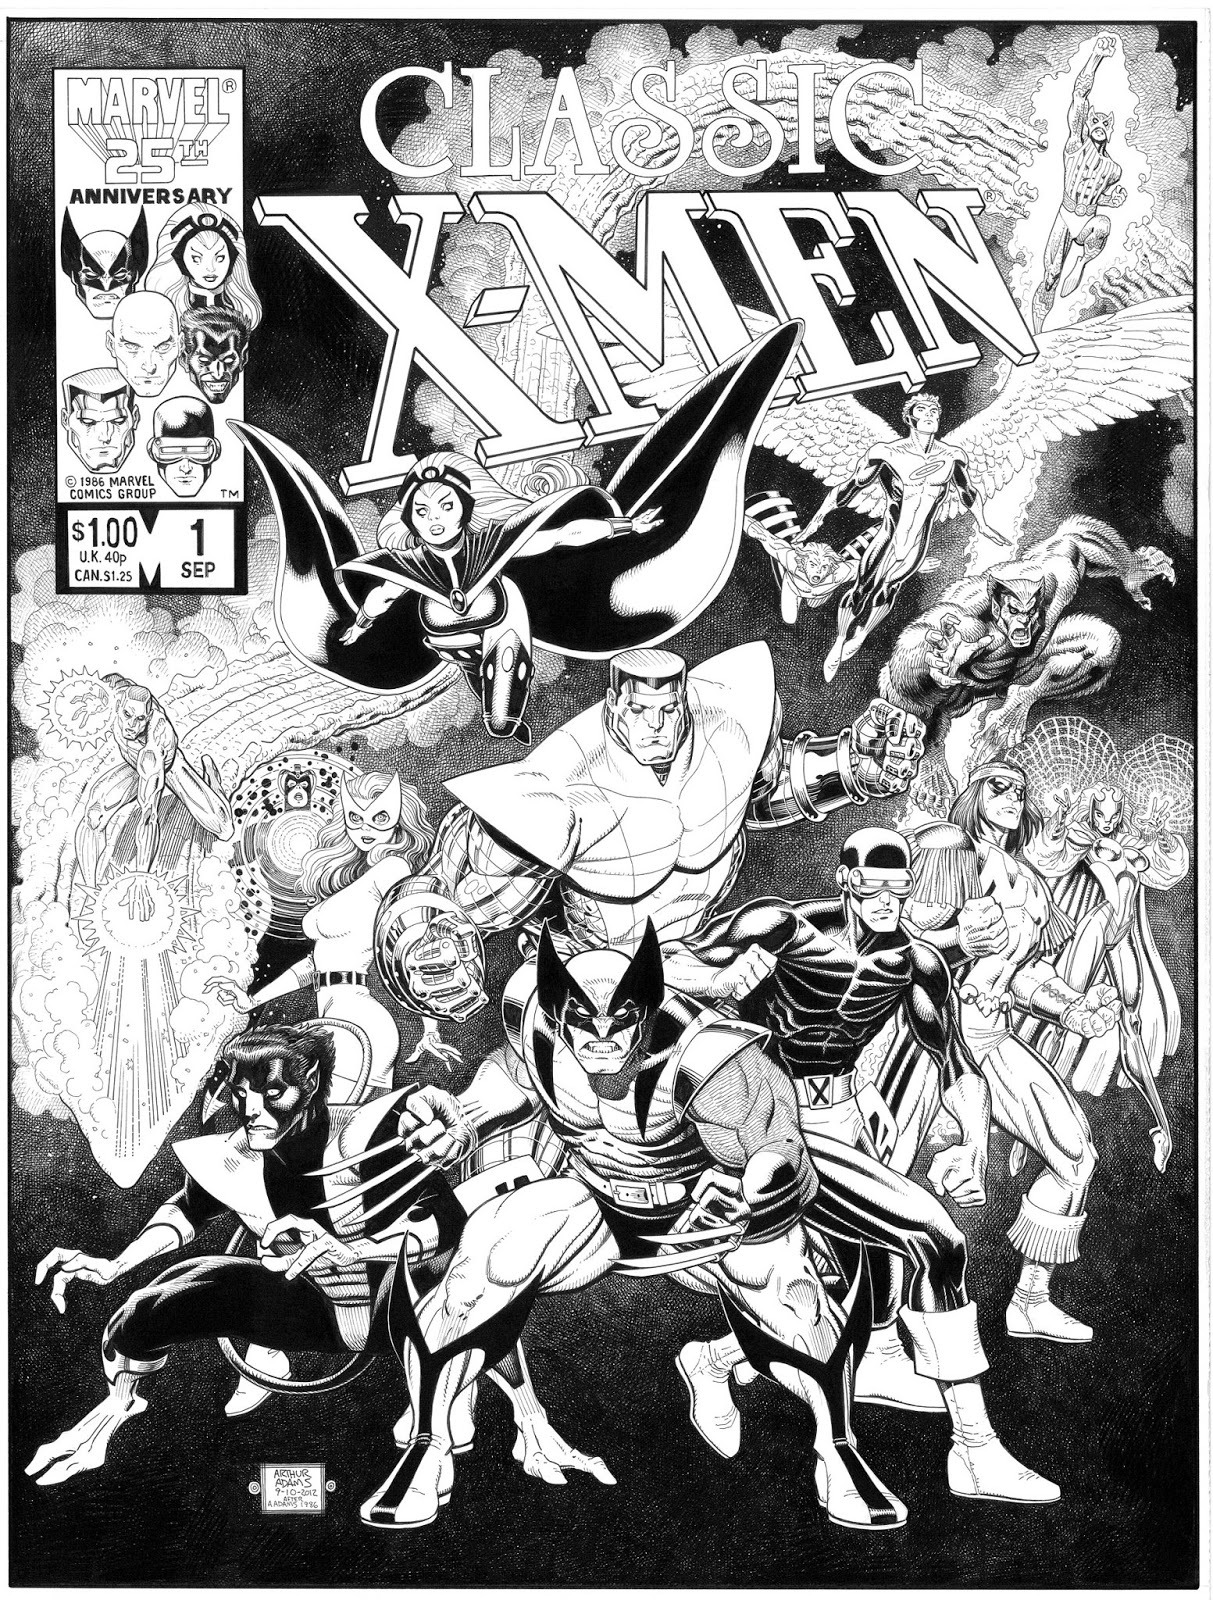 This is a commission of Classic X-Men #1, drawn by Art Adams as he would draw it today. Via Brian Michael Bendis' Tumblr.